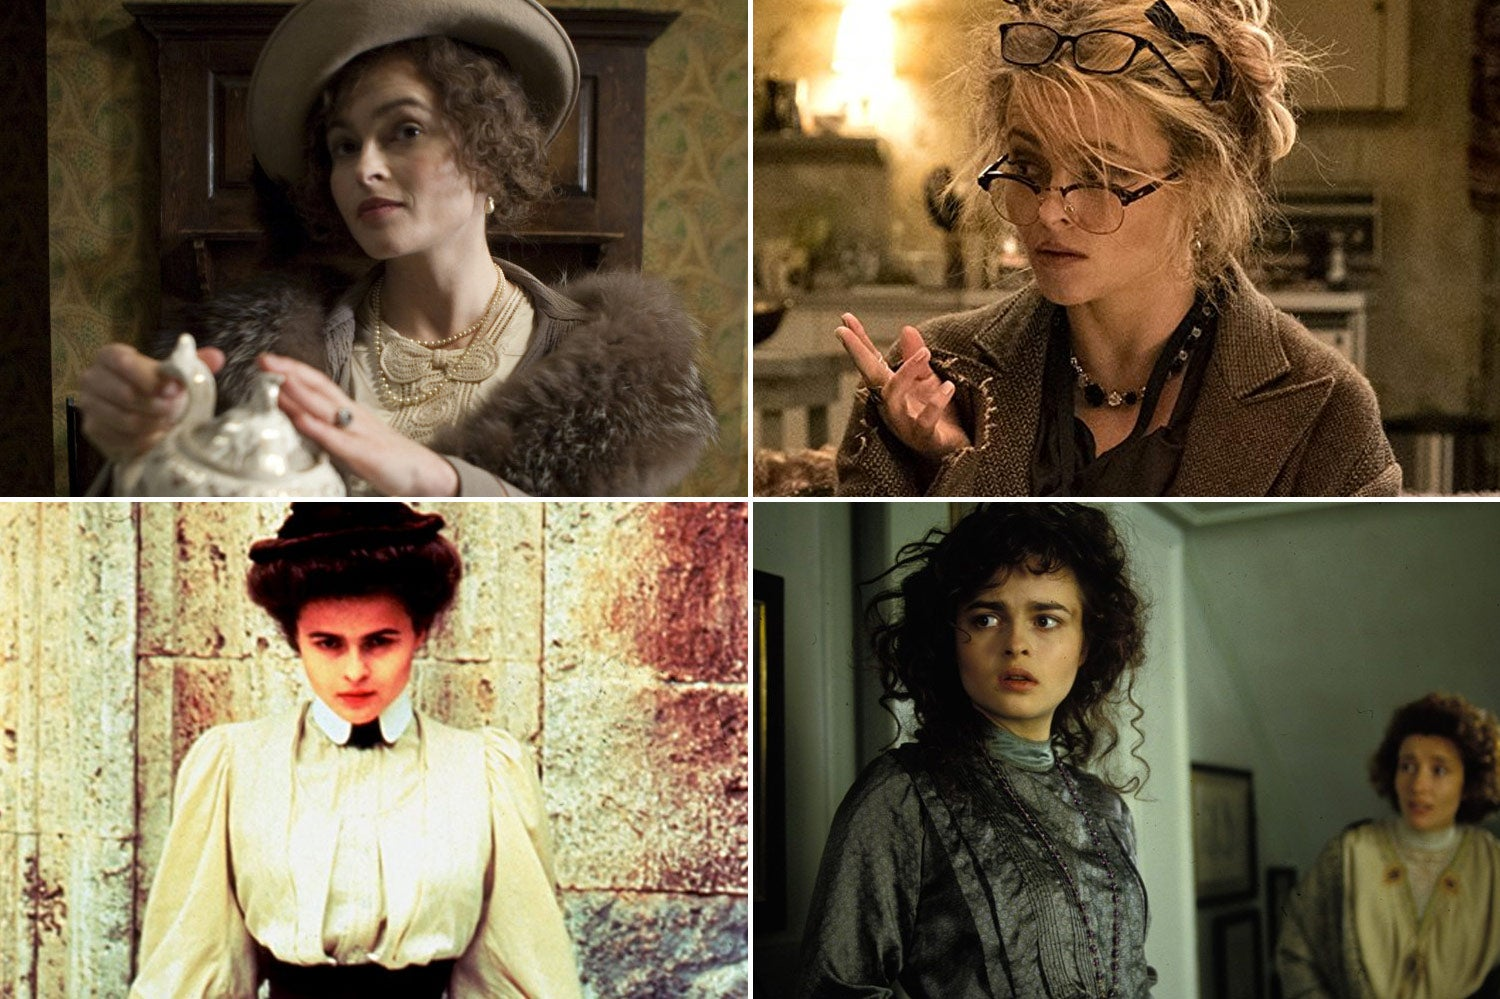 Helena Bonham Carter in The King's Speech, Ocean's 8, A Room With a View, and Howard's End.